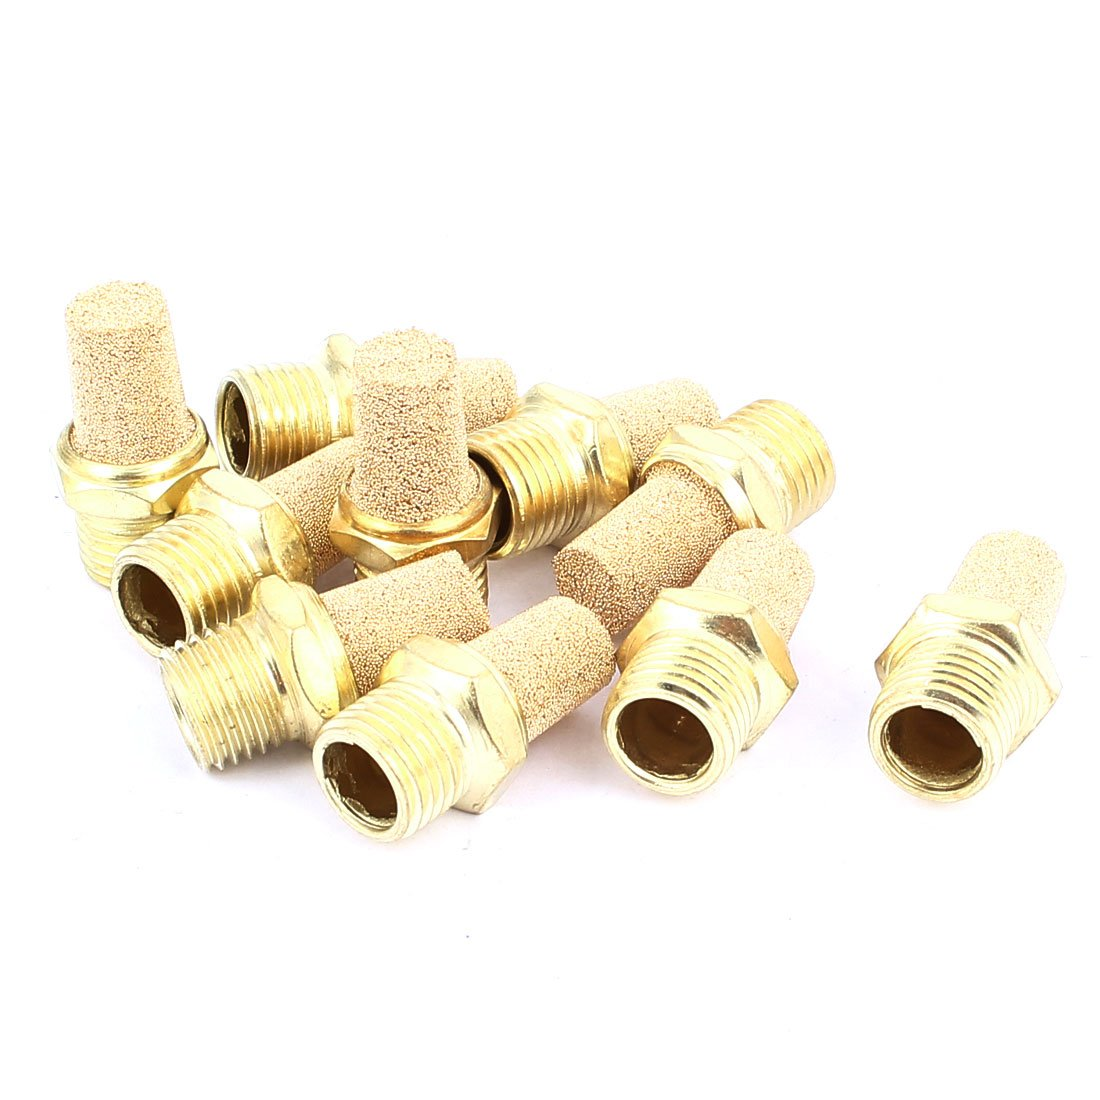 uxcell 1/4PT Male Thread Pneumatic Muffler Filter Exhaust Brass 10 Pcs